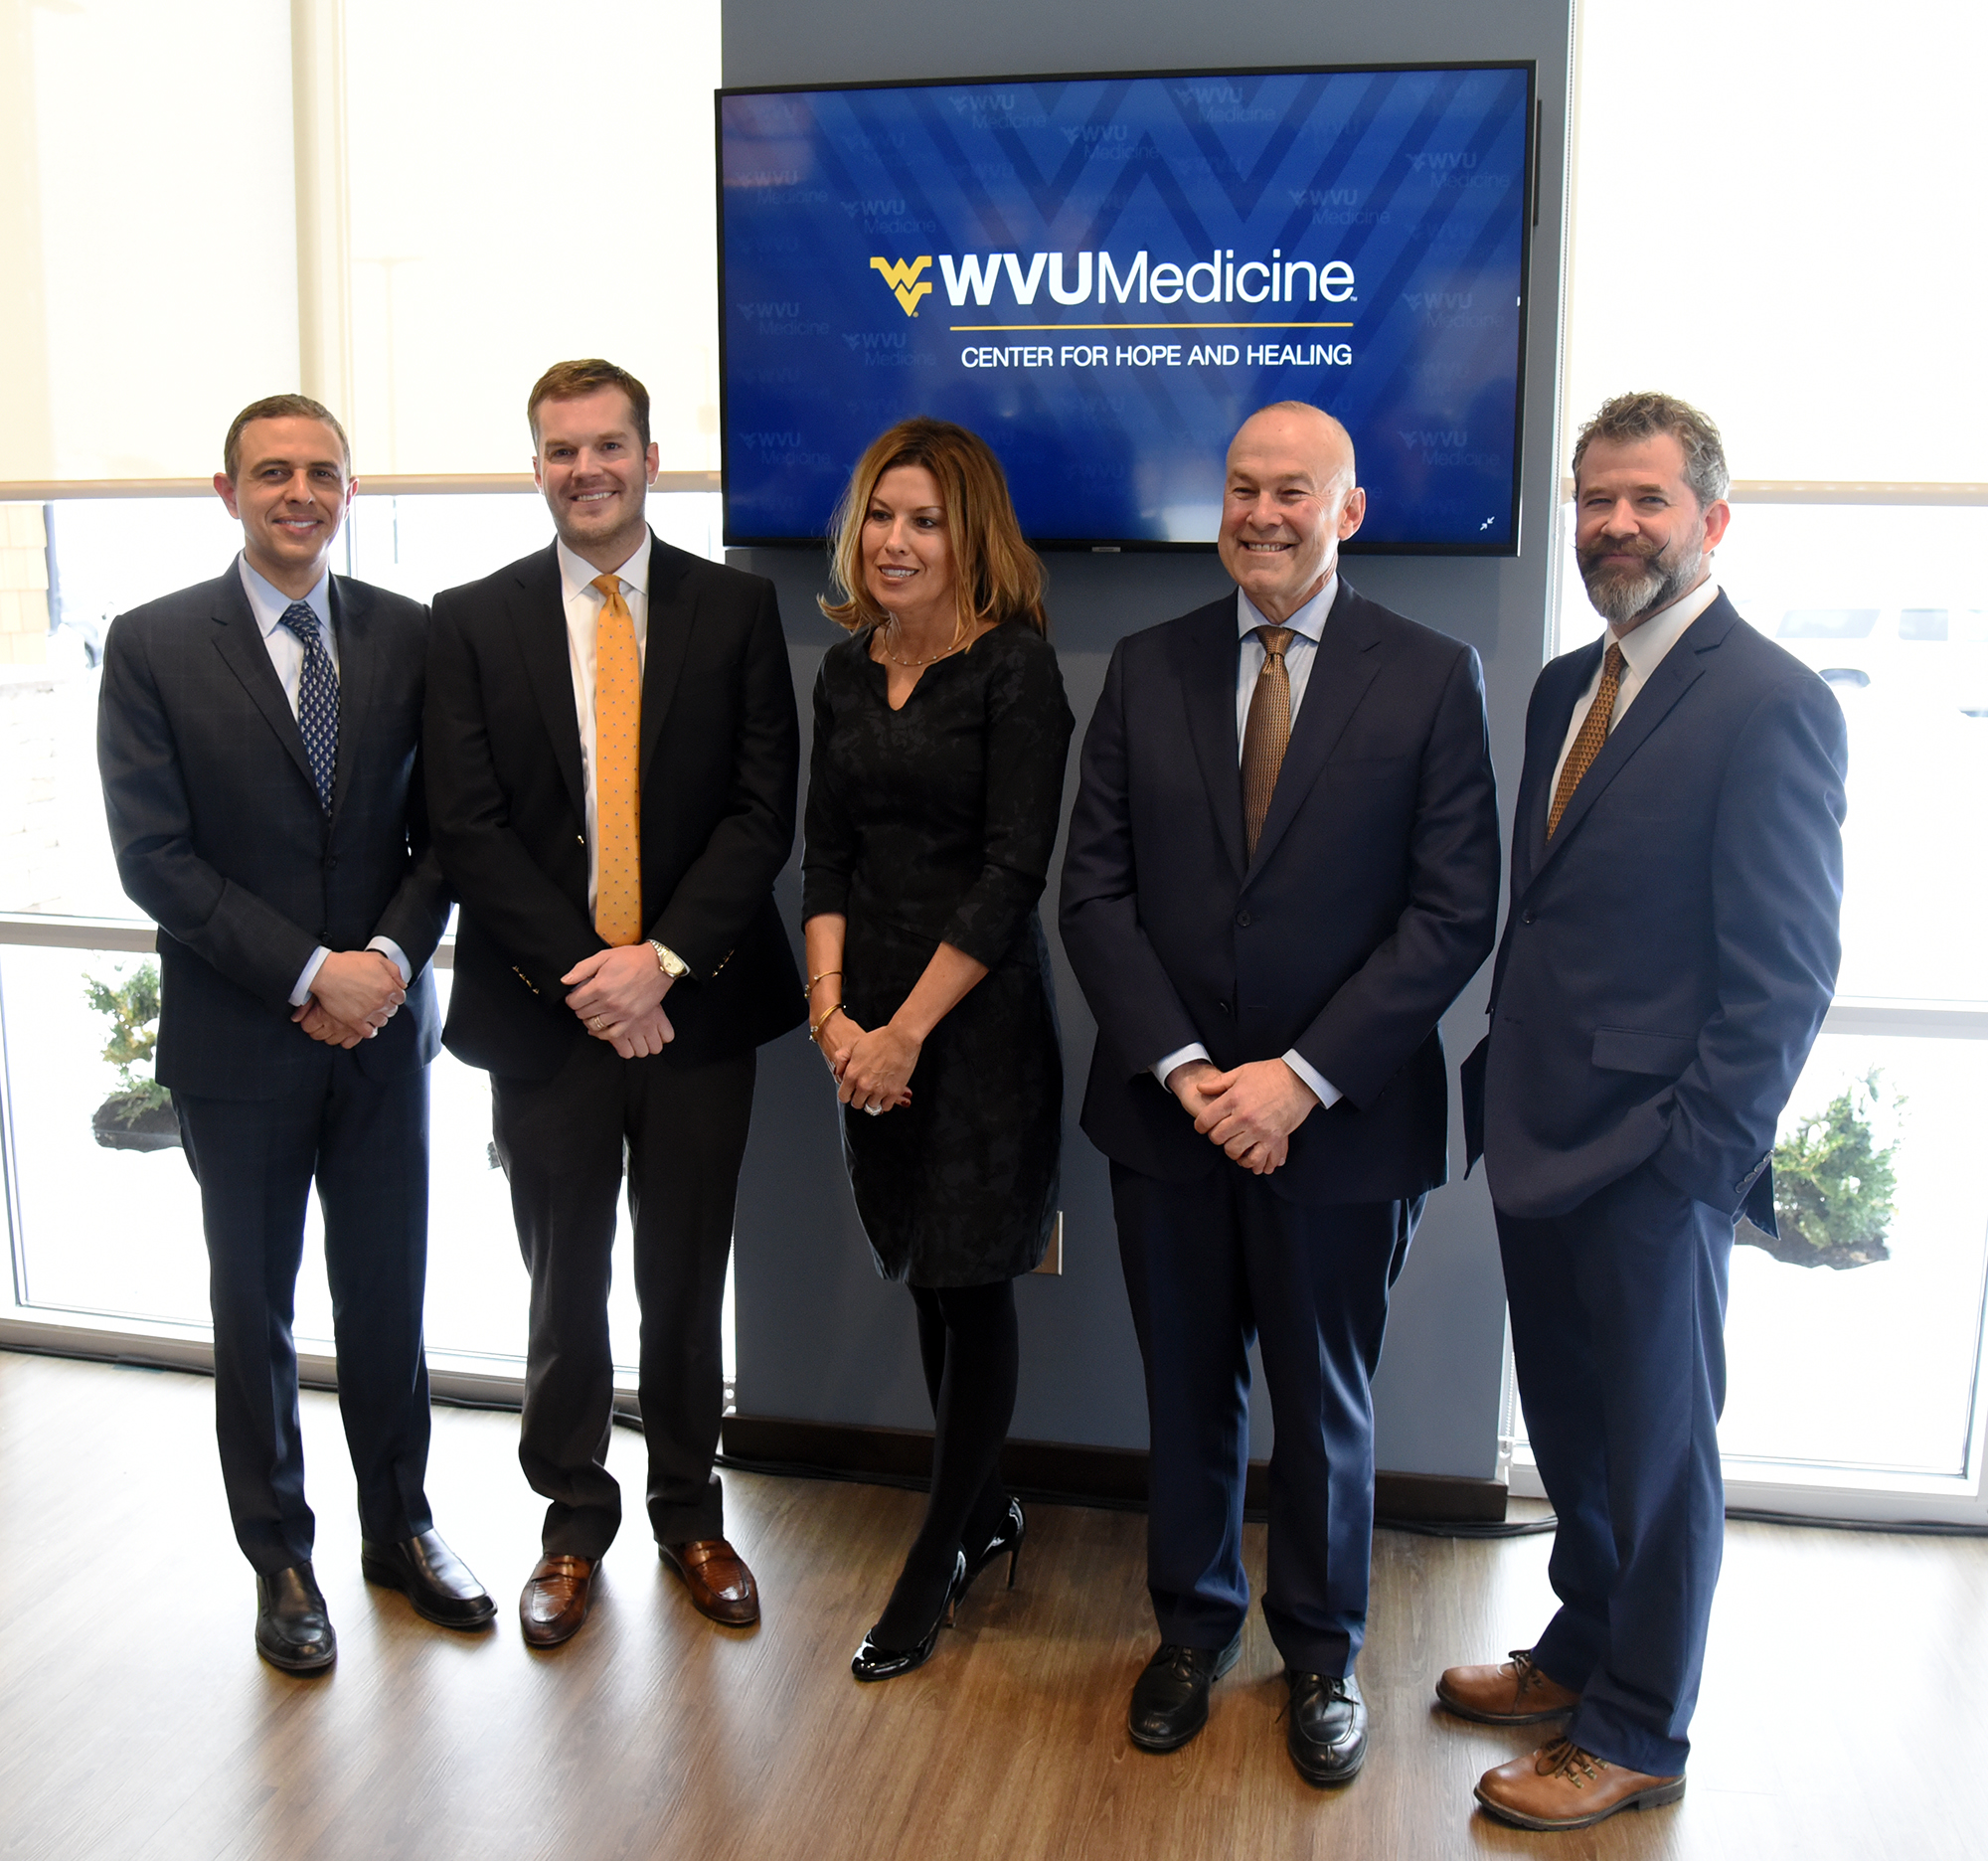 (From left to right) Ali Rezai, M.D., executive chair of the WVU Rockefeller Neuroscience; Douglas M. Leech, founder and CEO of Ascension Recovery Services; Amy Bush-Marone, R.N., B.S.N., M.B.A., WVU Medicine vice president of clinical operations; Clay B. Marsh, M.D., vice president and executive dean of WVU Health Sciences; and James Berry, D.O.,director of addiction services, WVU Medicine Chestnut Ridge Center, and interim chair, WVU Department of Behavioral Medicine and Psychiatry, were among those gathered to celebrate the opening of the WVU Medicine Center for Hope and Healing today (March 1).